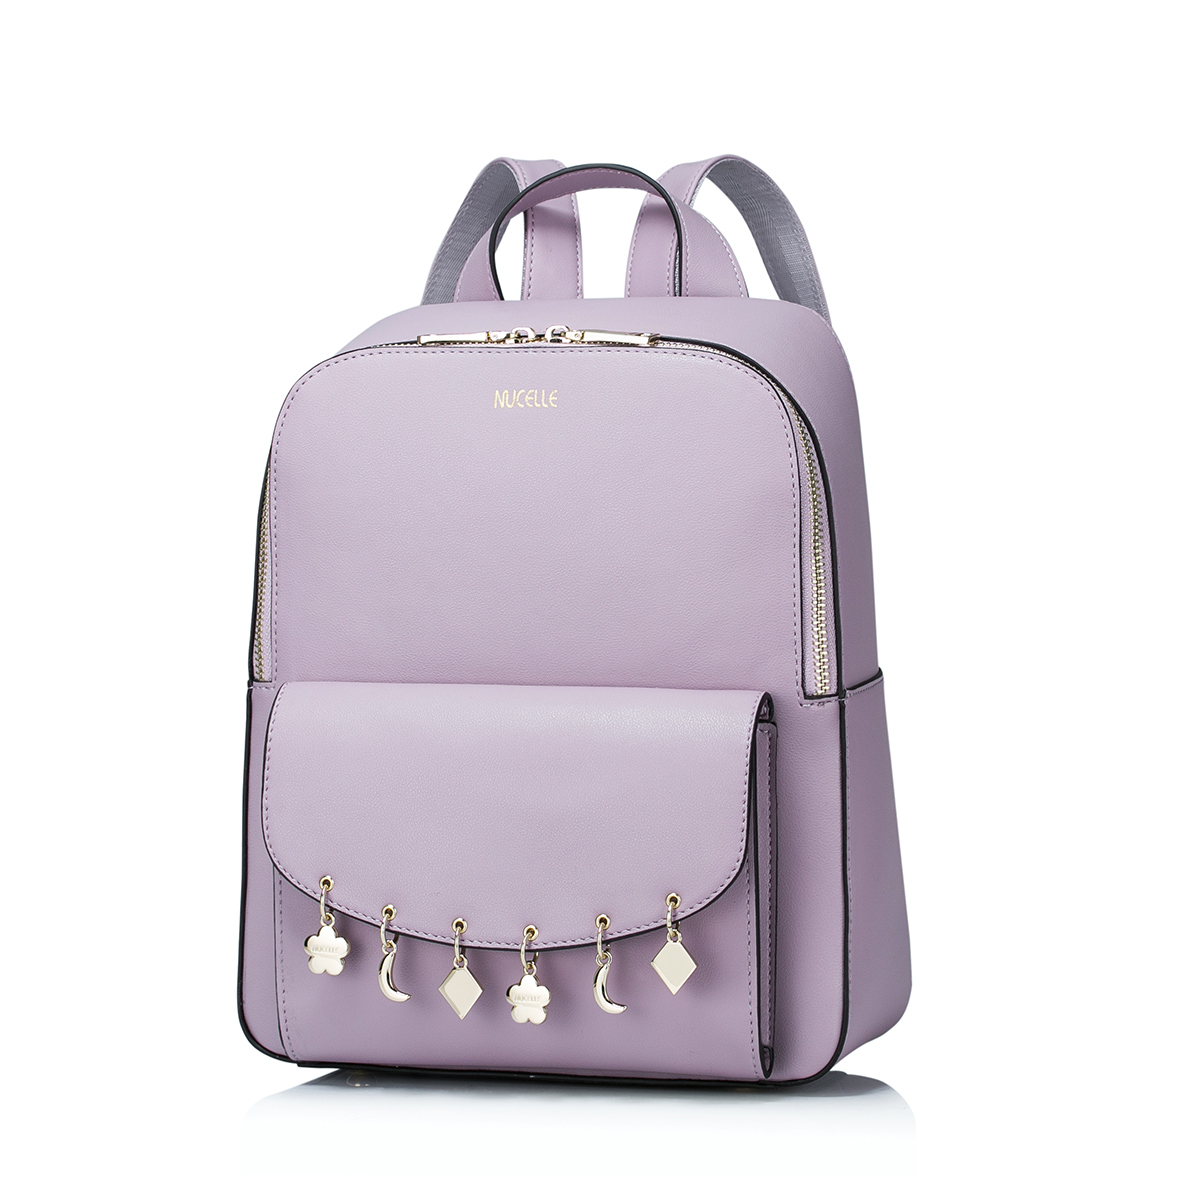 Hot Sale Fashion Tassel Hanging Drop PU Leather Casual Women Lady Backpacks Daypacks School Shoulders Bag Girls Student nucelle brand new design fashion drawstring gemstone lock zipper cow leather casual women lady backpacks shoulders school bag